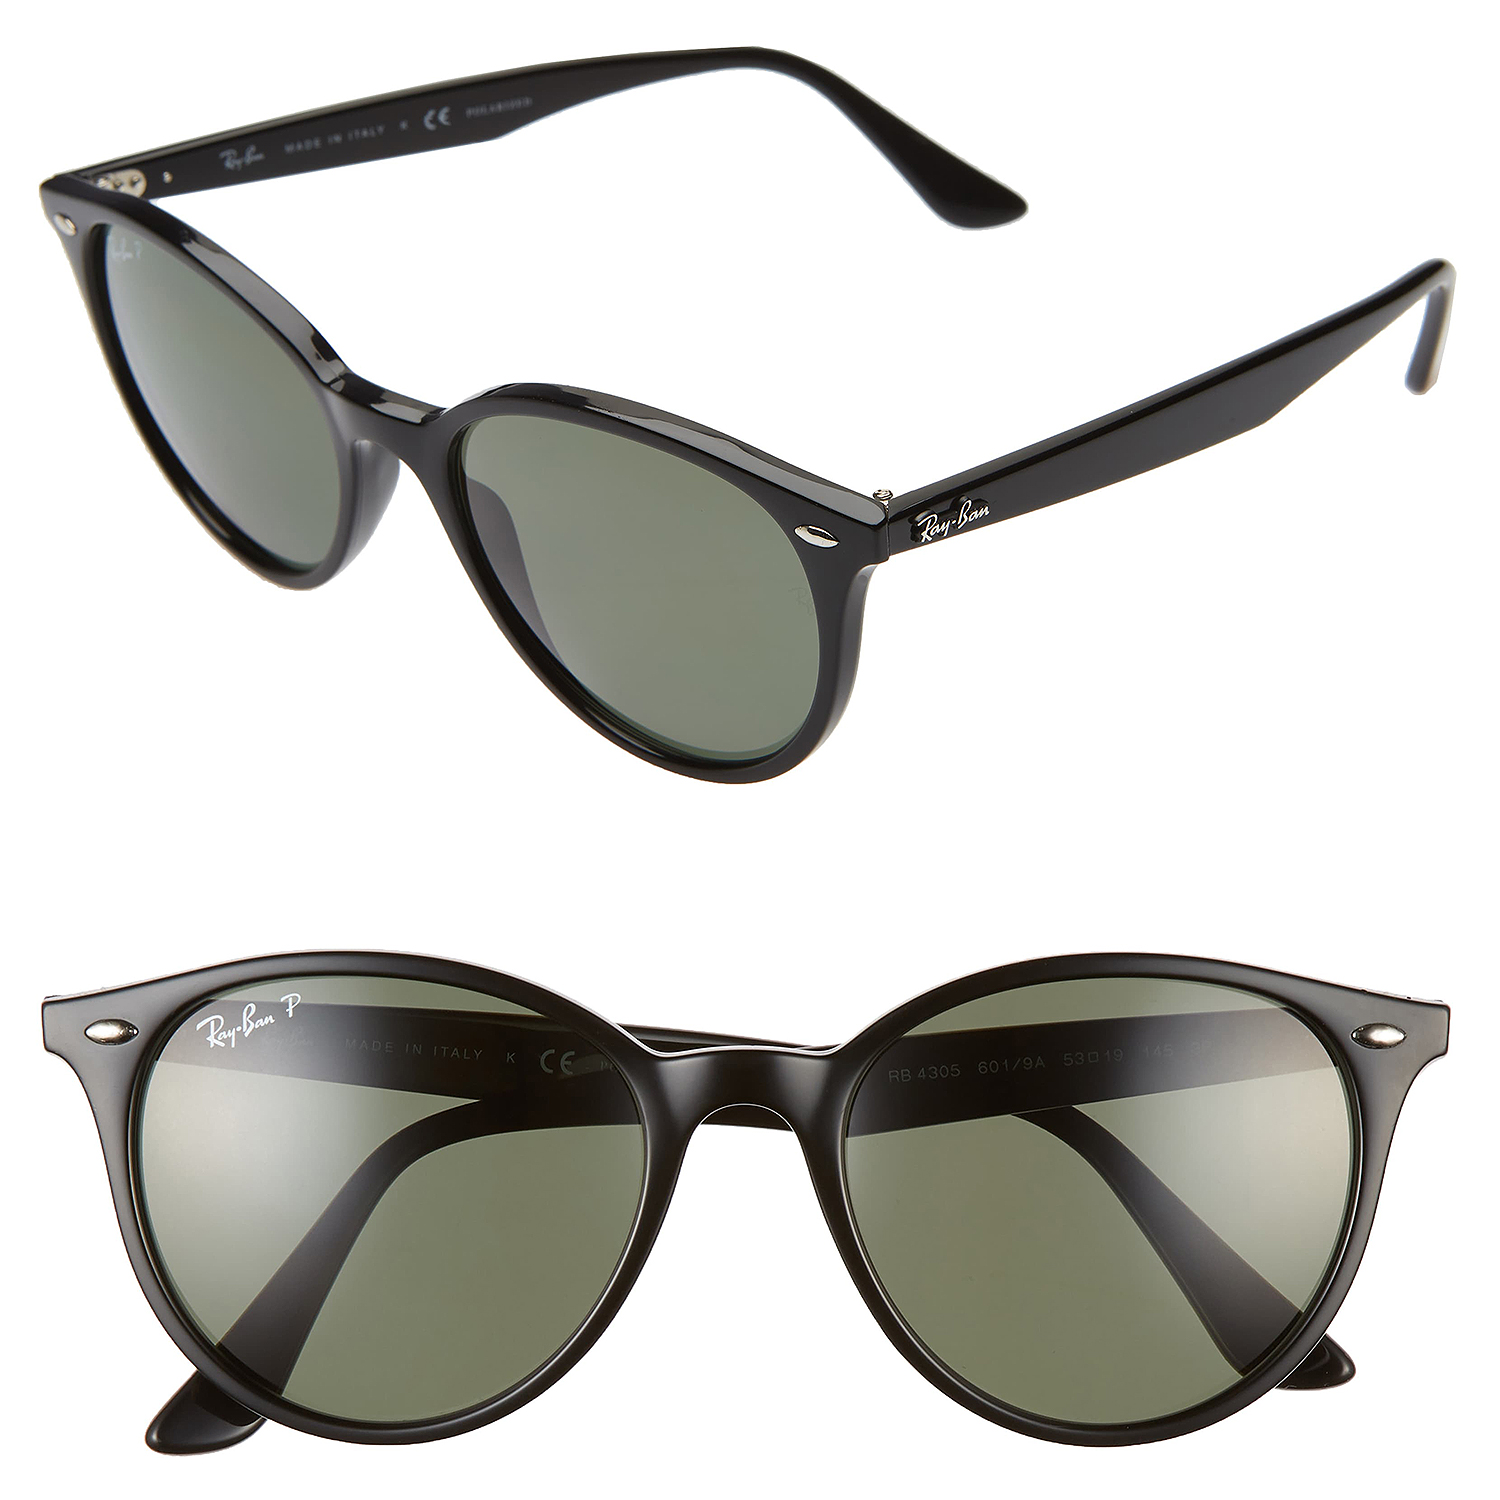 nordstrom ray-ban sale